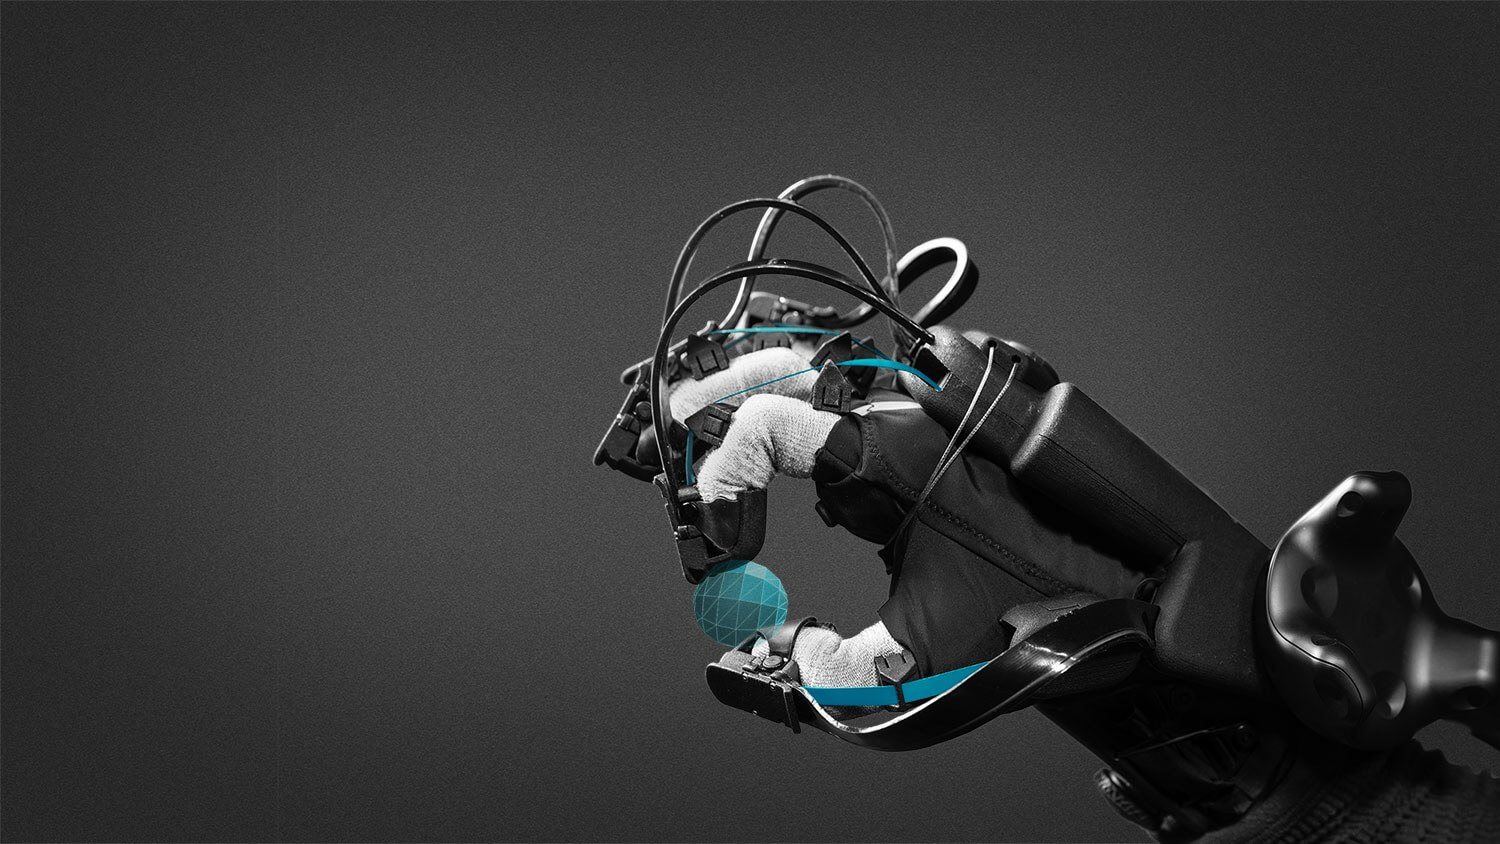 HaptX Gloves Development Kit bring haptics and force feedback to VR